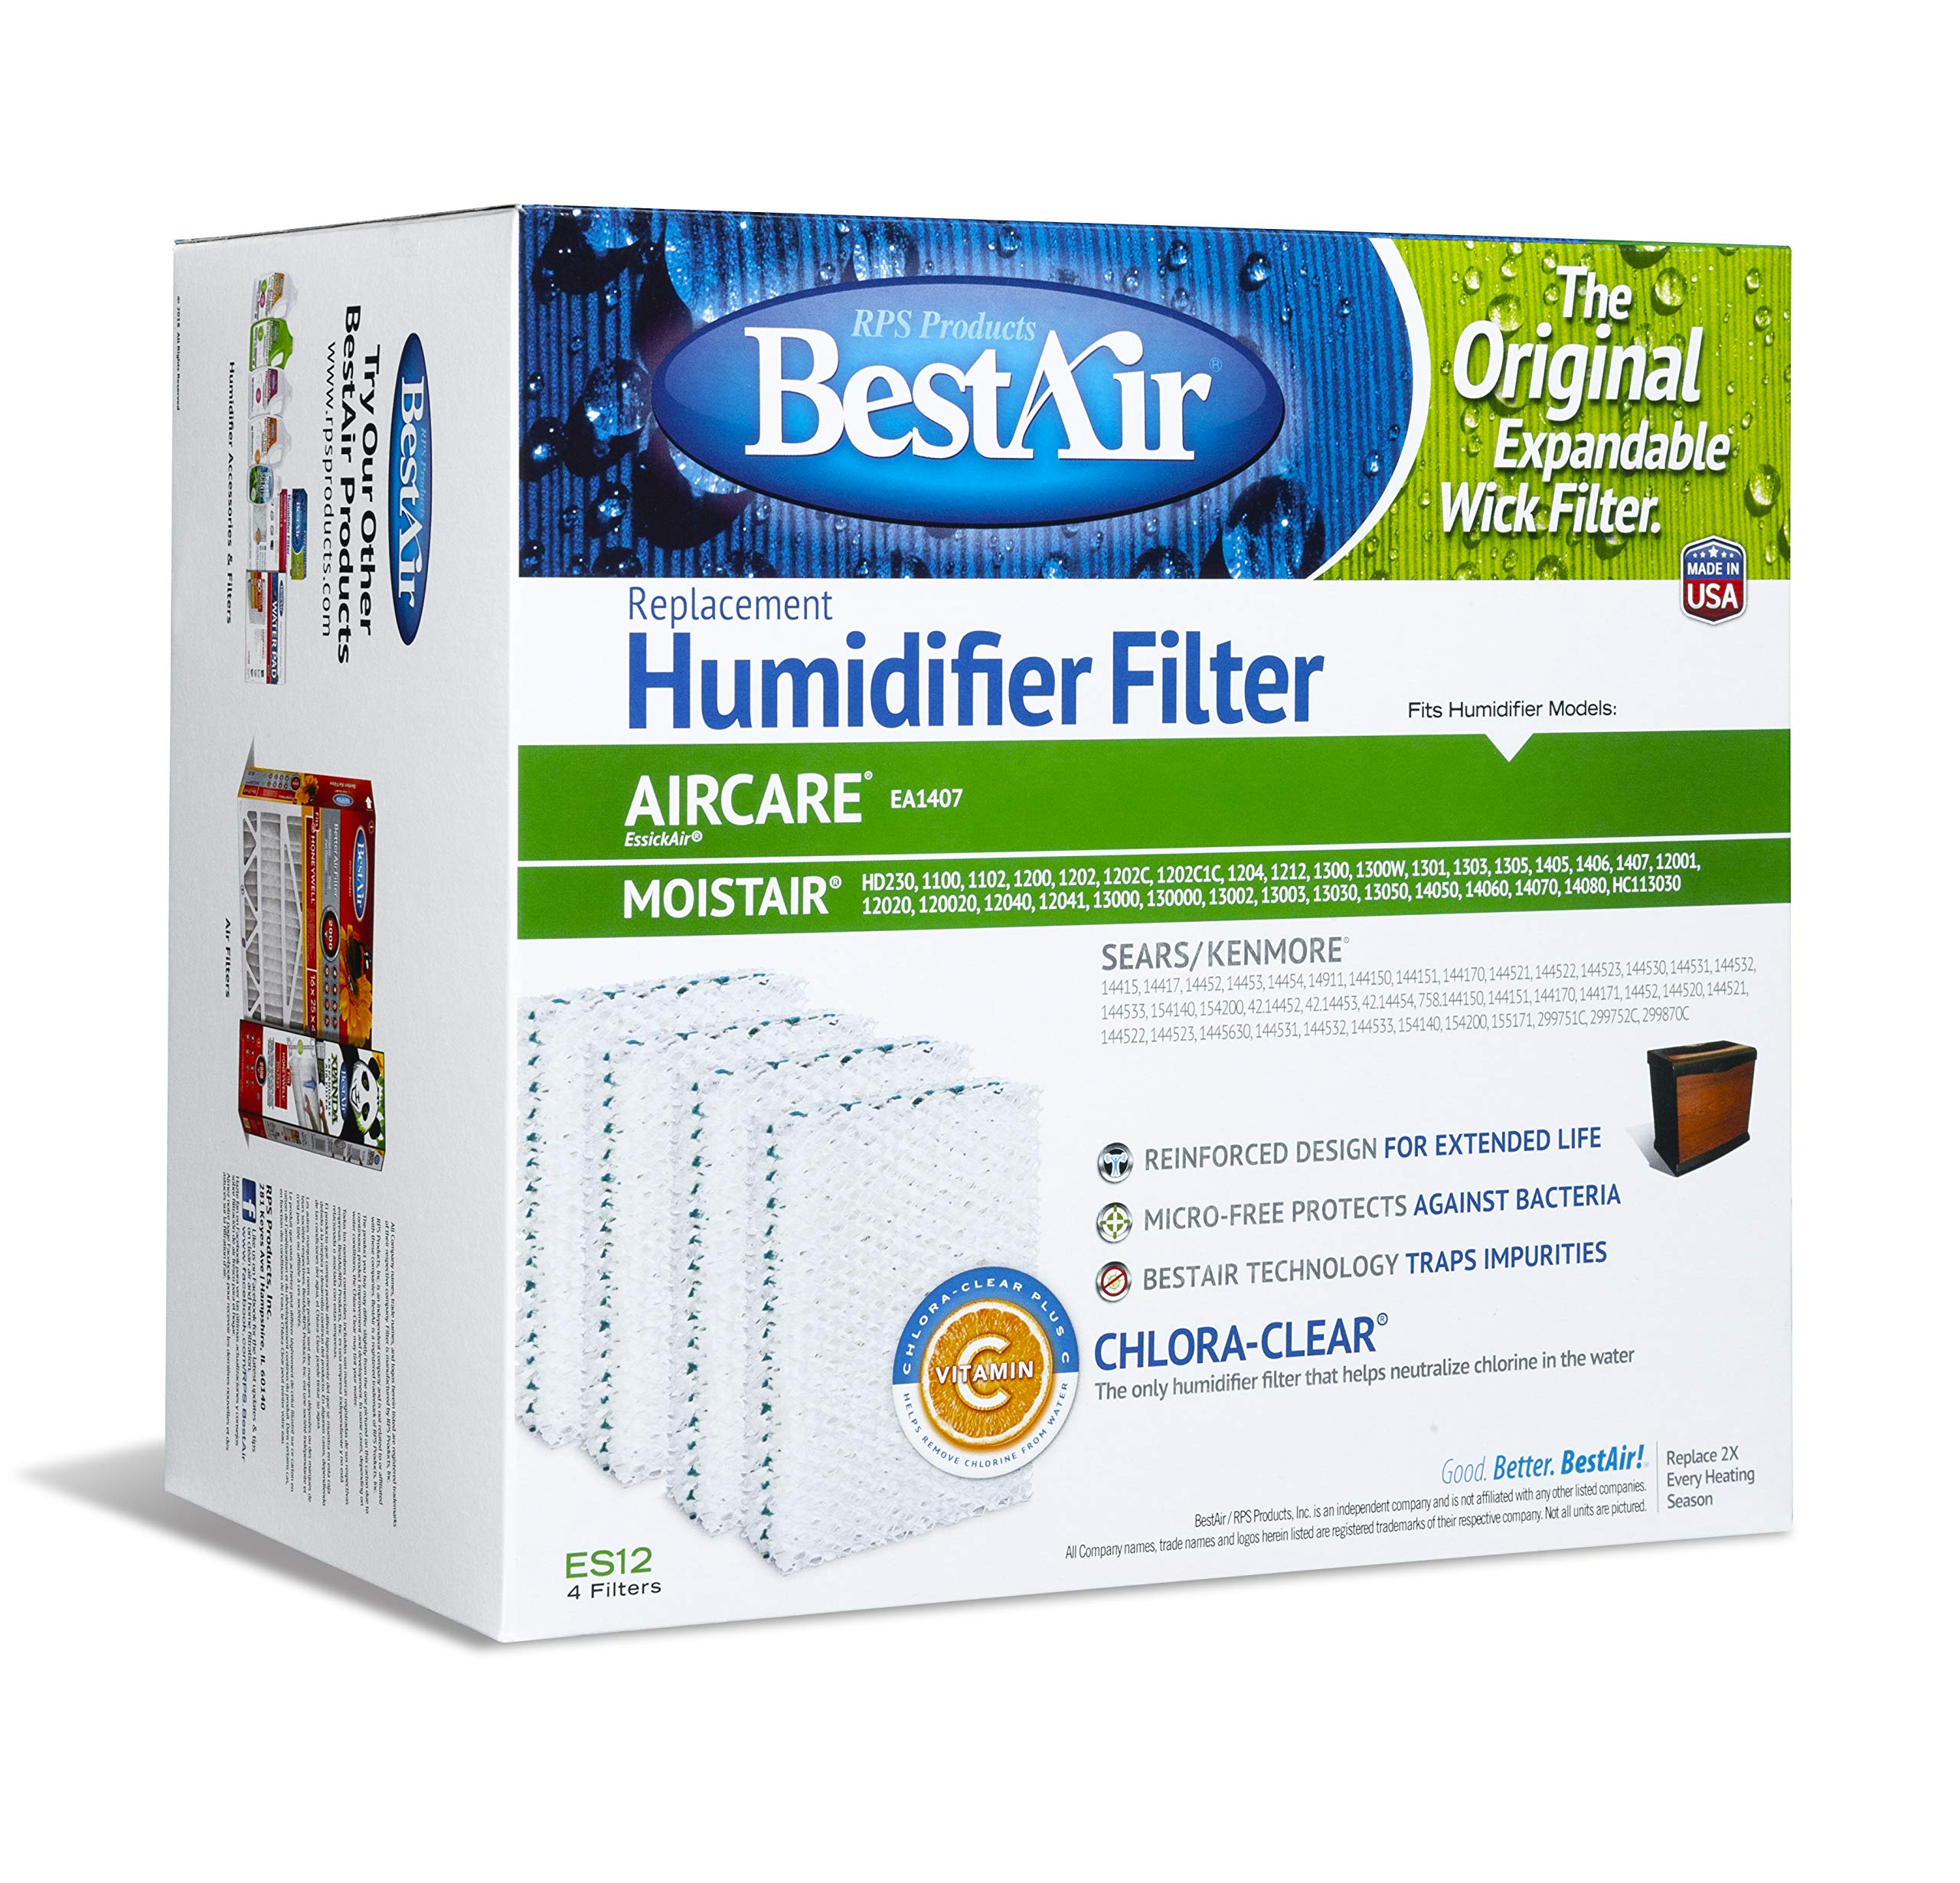 BestAir ES12-2 Extended Life Humidifier Replacement Paper Wick Humidifier Filter, For Emerson, Quiet Comfort & Kenmore Models, 10'' x 9.4'' x 6.5'', Single Pack (4 Filters) by BestAir